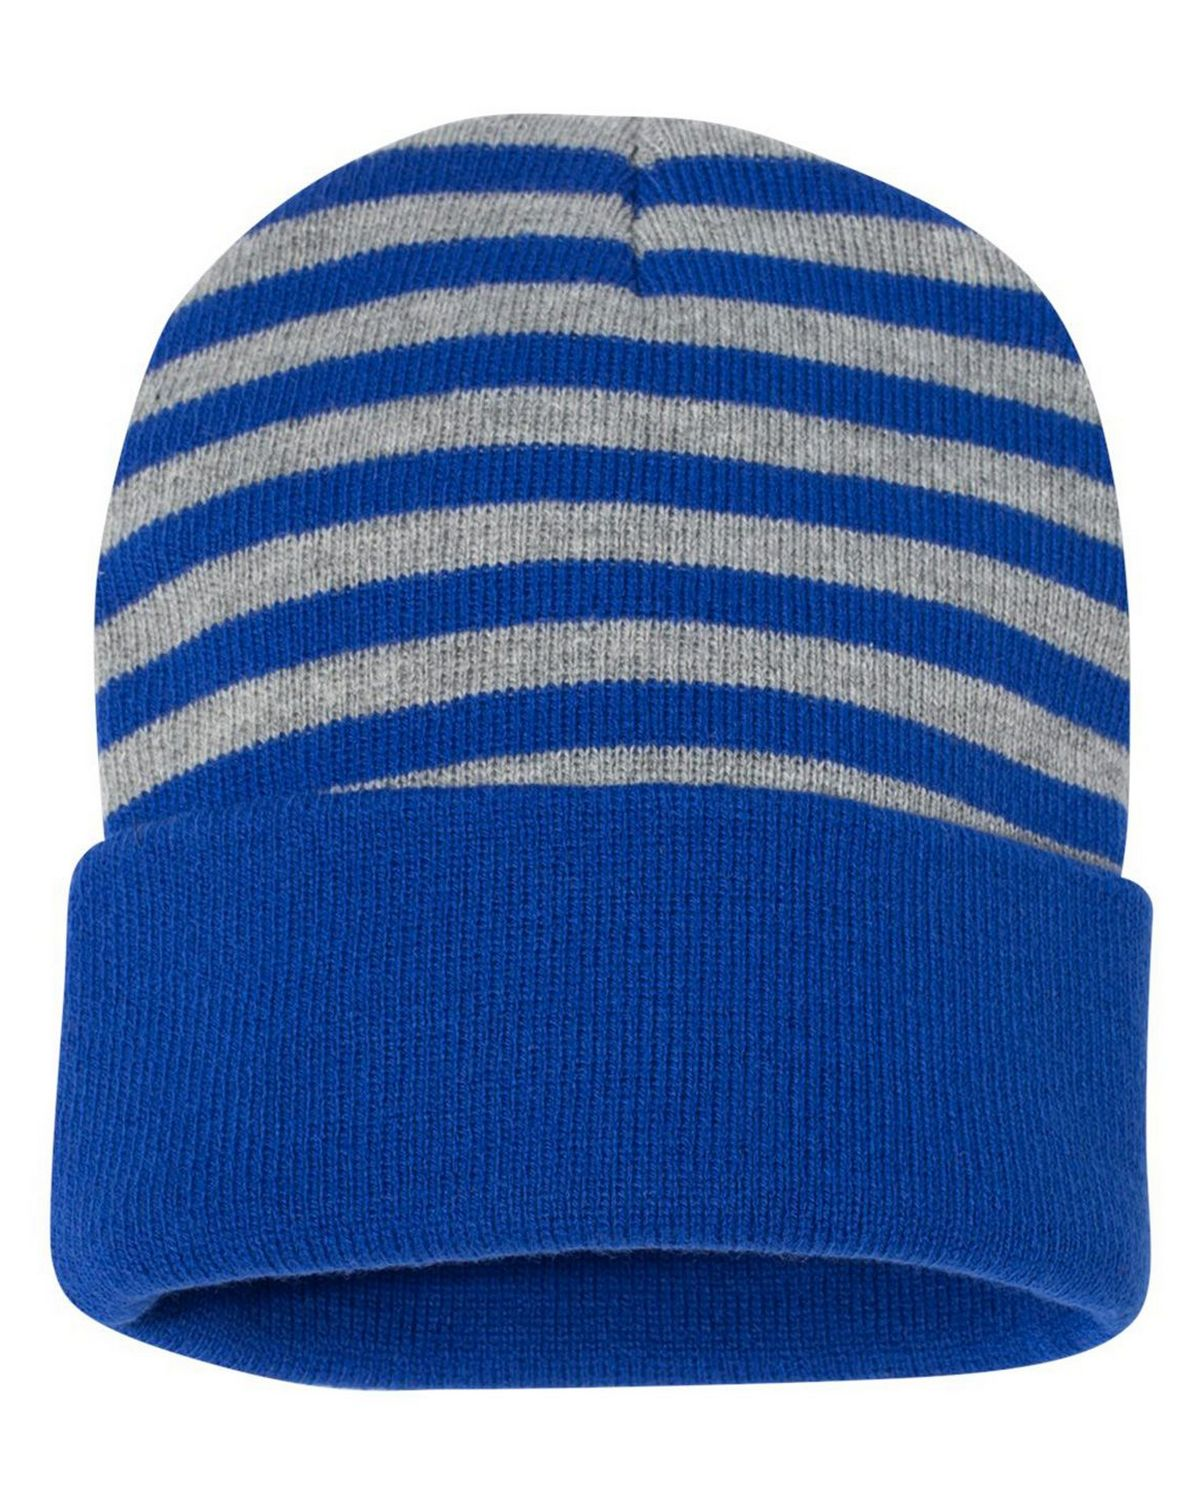 Sportsman SP12S 12 Inch Striped Knit Beanie